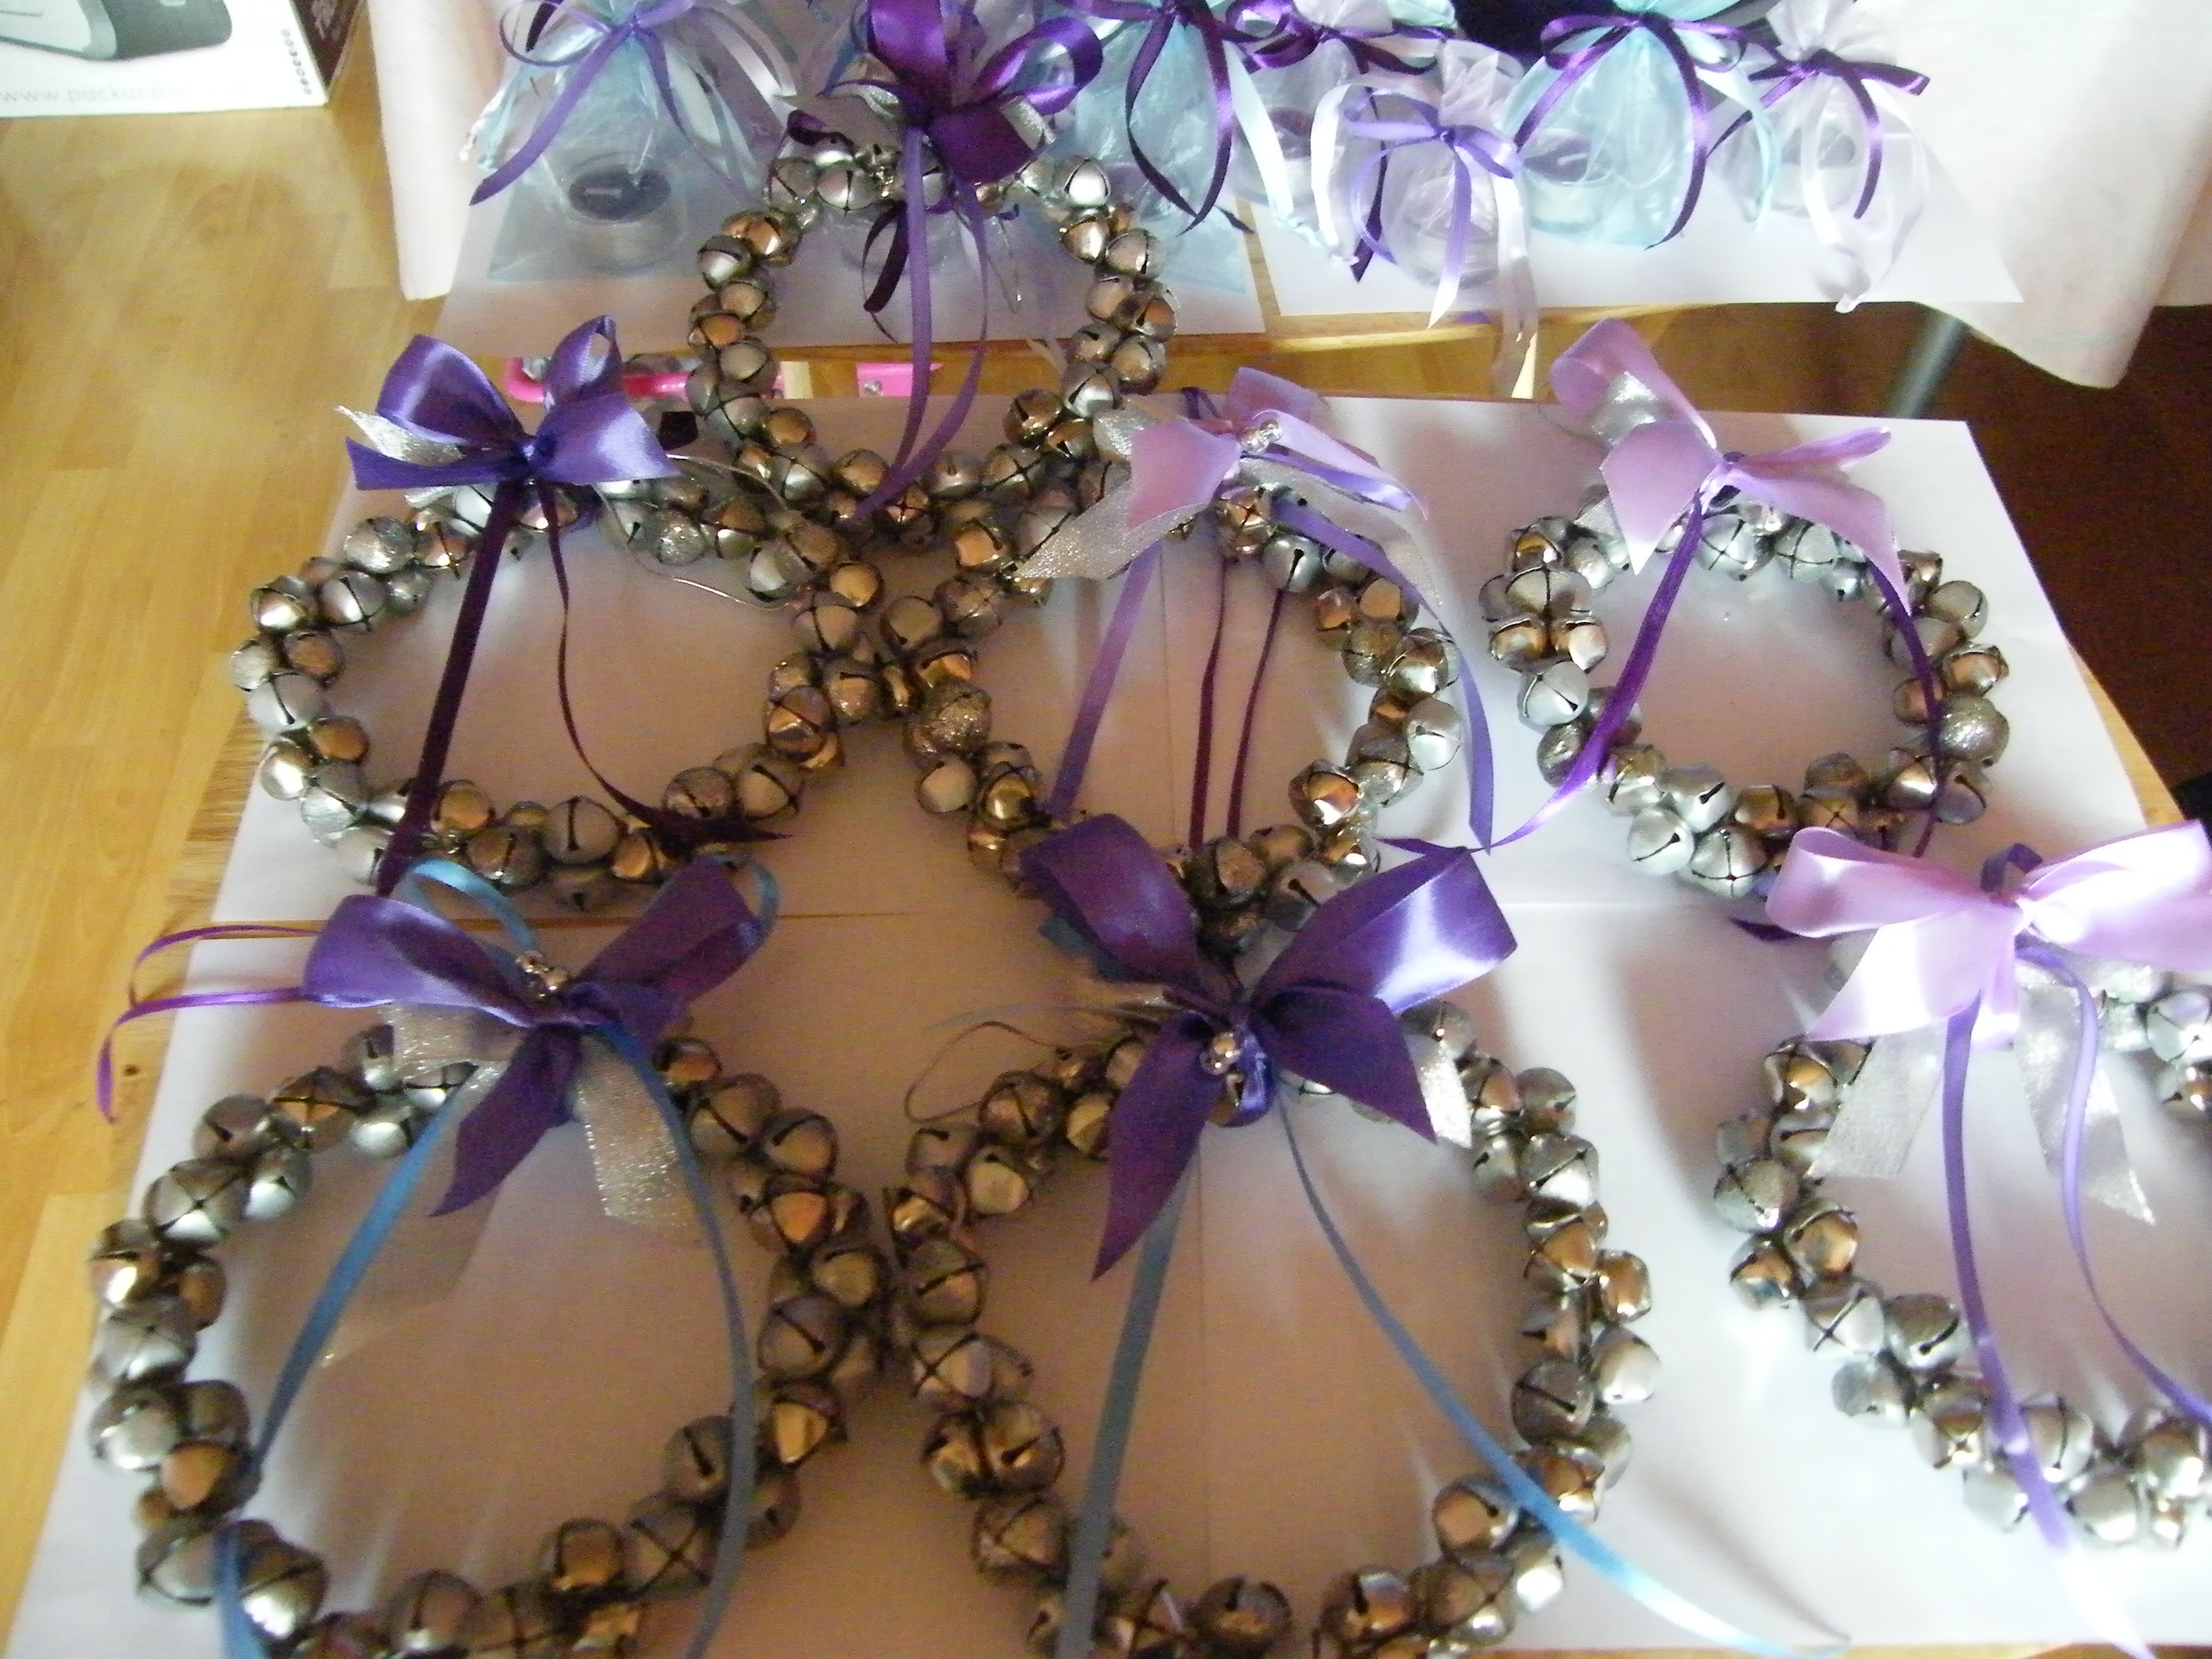 WEDDING ARRANGEMENTS FOR THE BANISTERS